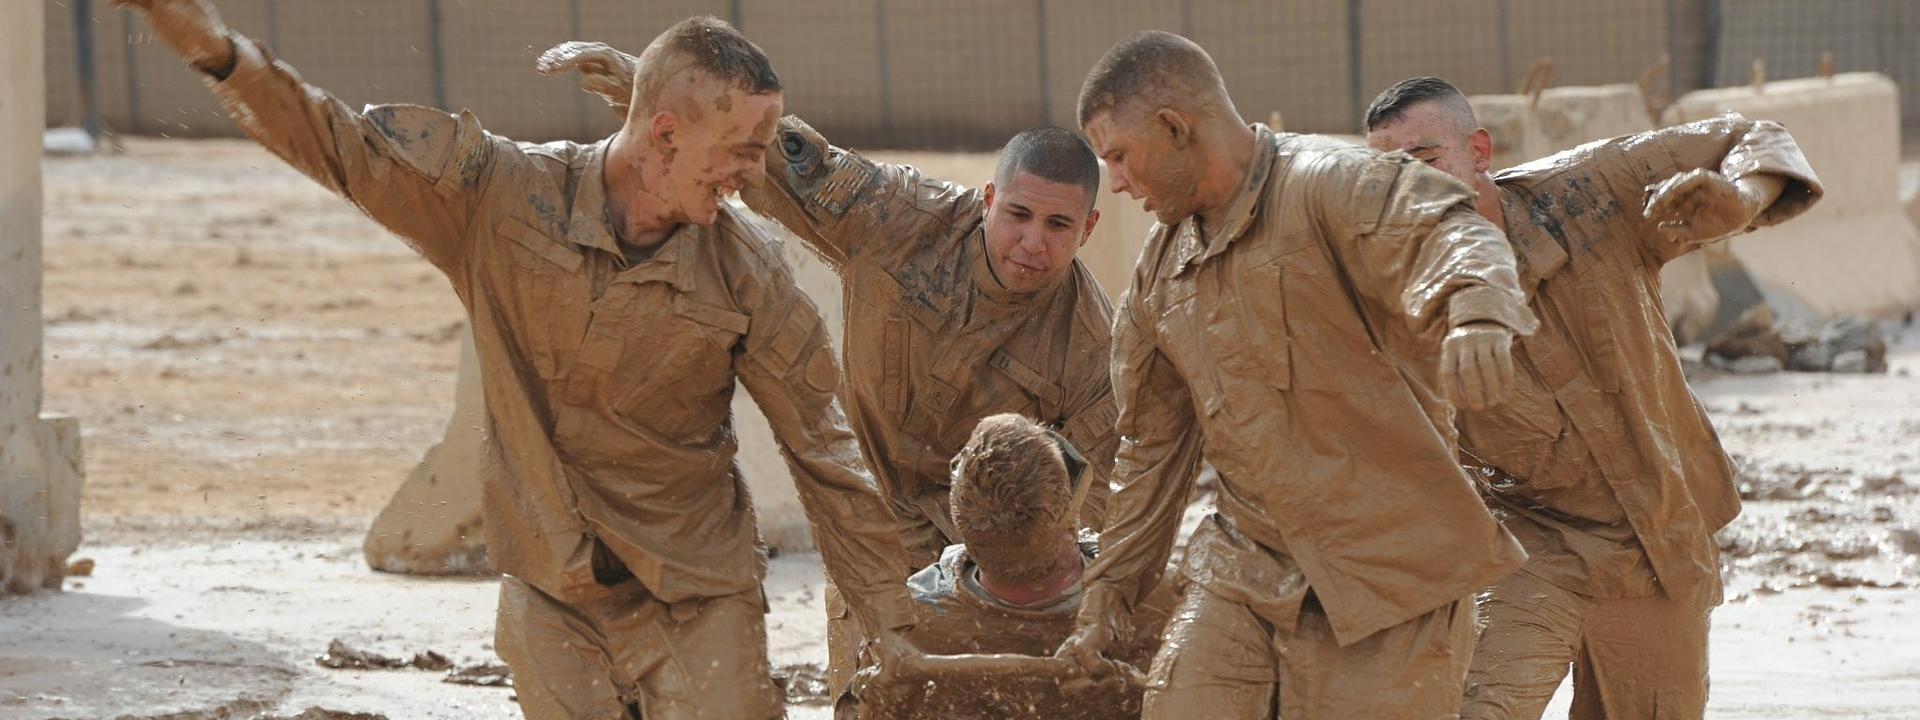 teamwork-training-exercise-615178_1920_cover.jpg